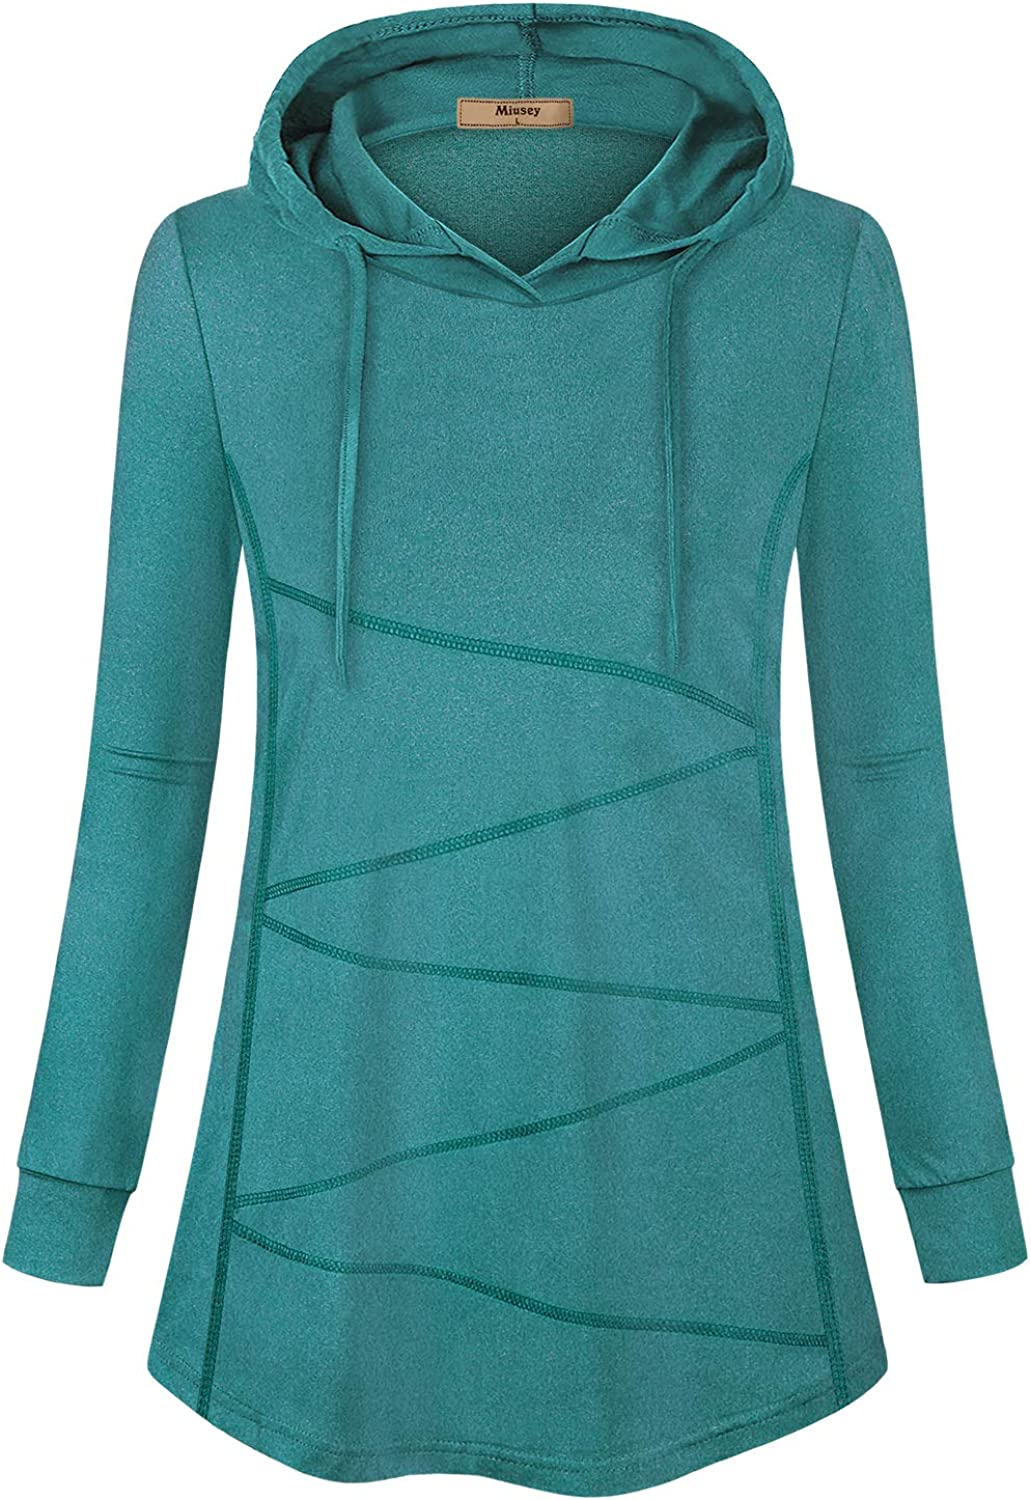 Miusey Women's Long Sleeve Sport Workout Tops Active Pullover Hoodie